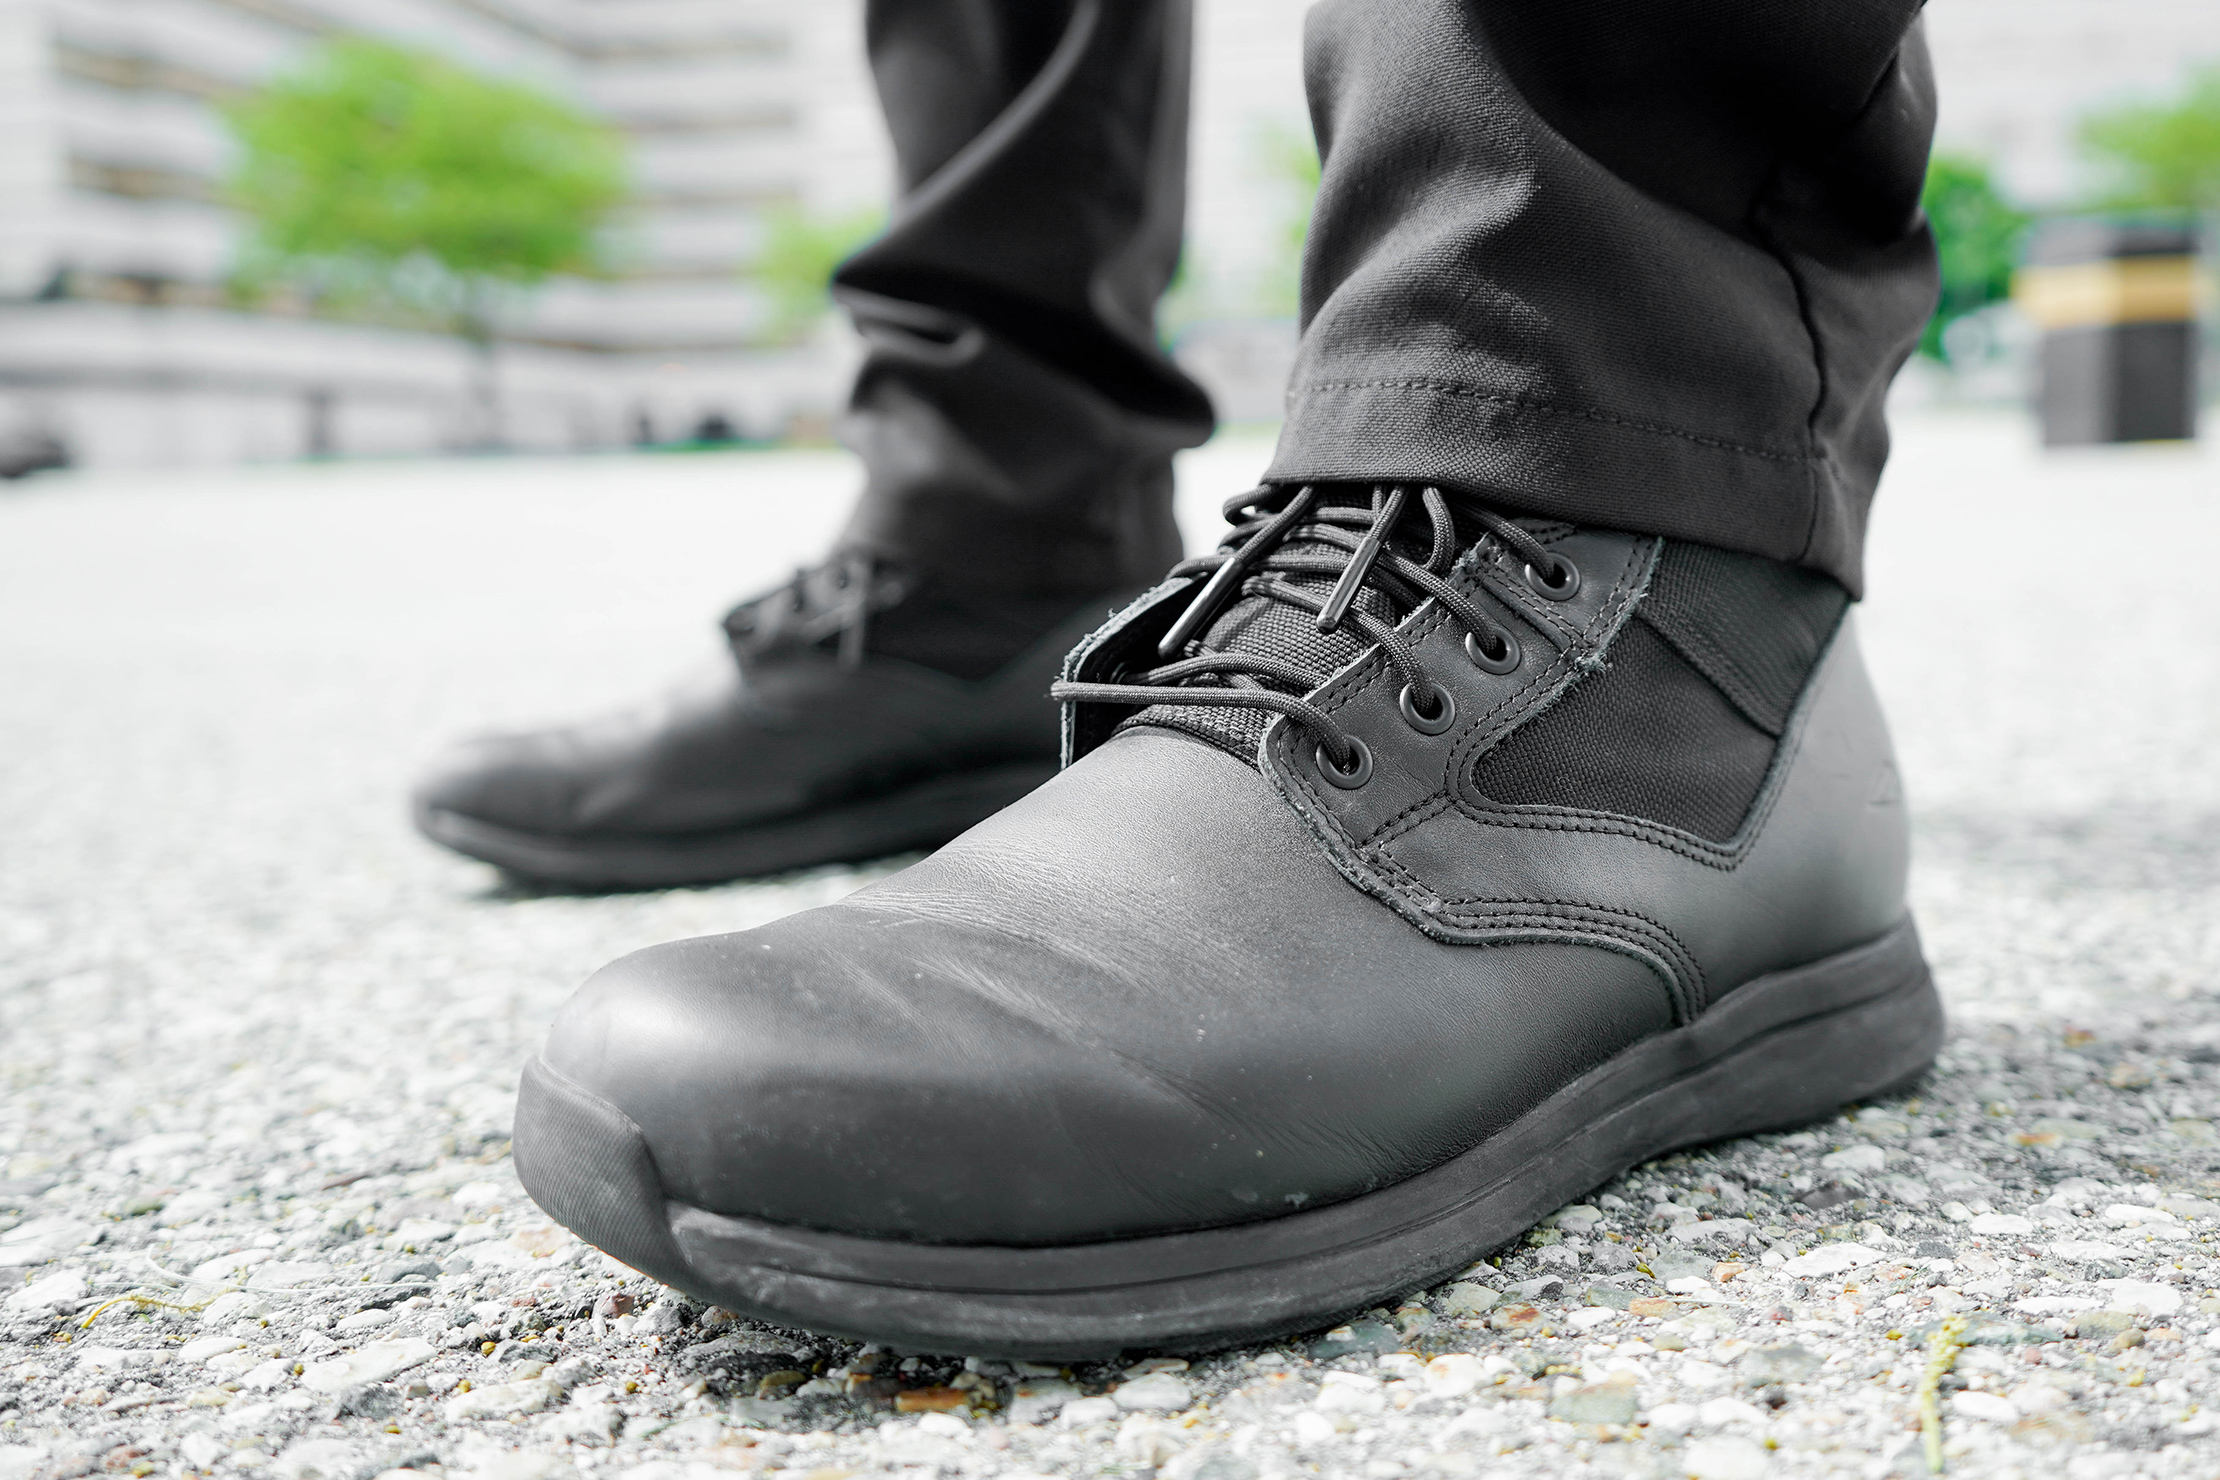 GORUCK MACV-1 Boots in Detroit